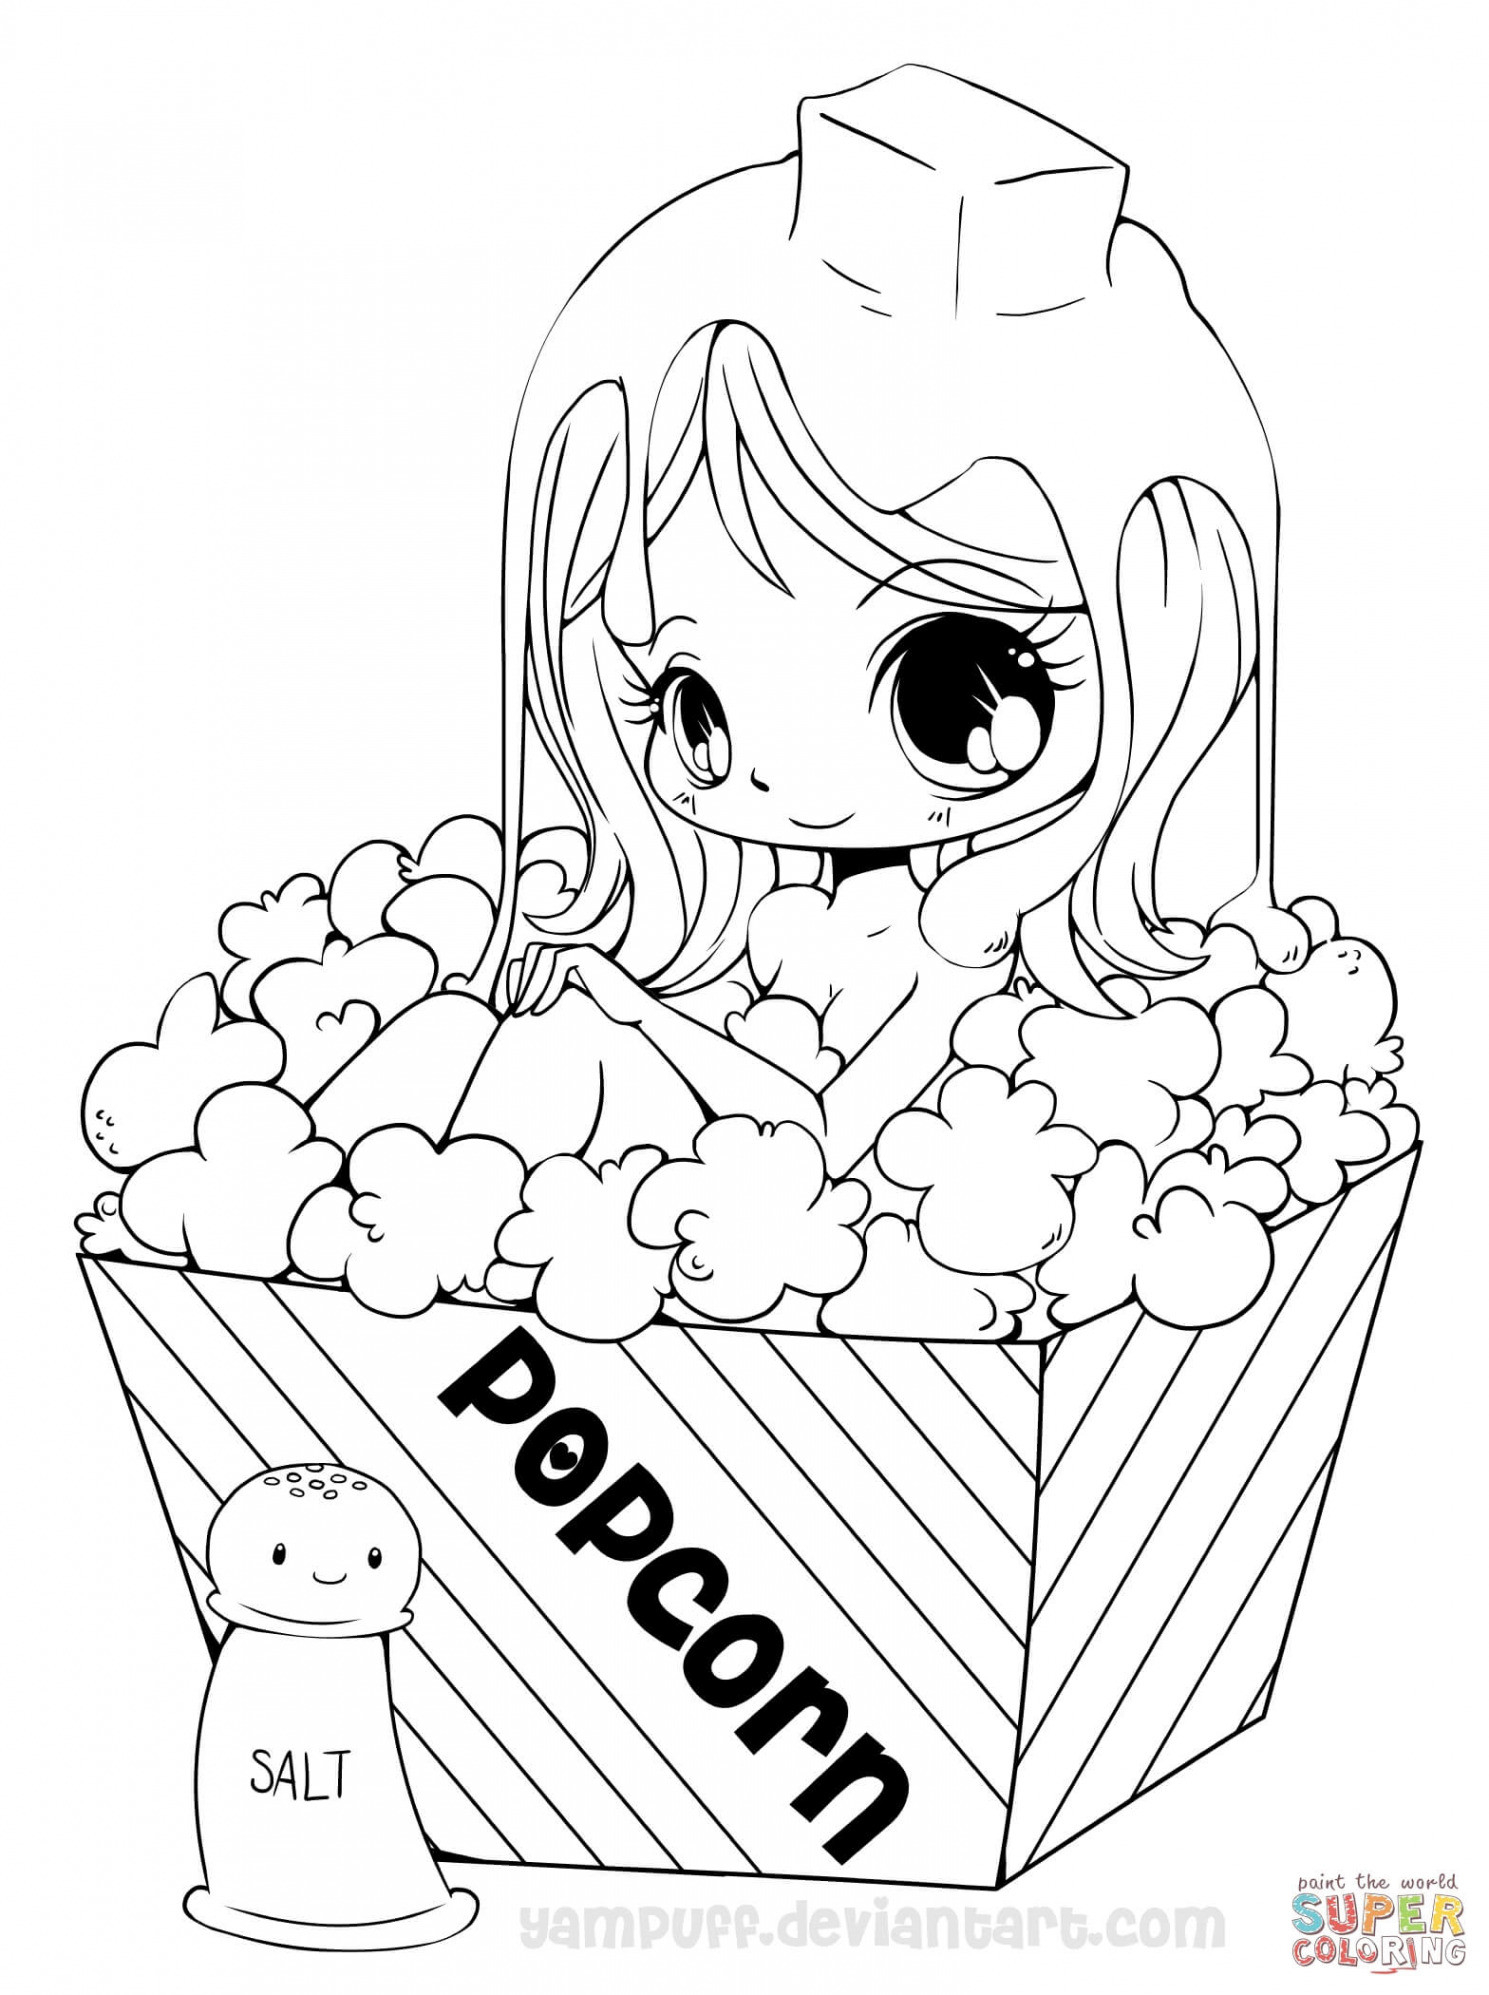 Printable Coloring Pages For Girls Printable Coloring Pages American Girl Dolls Awesome Anime Cat Girl